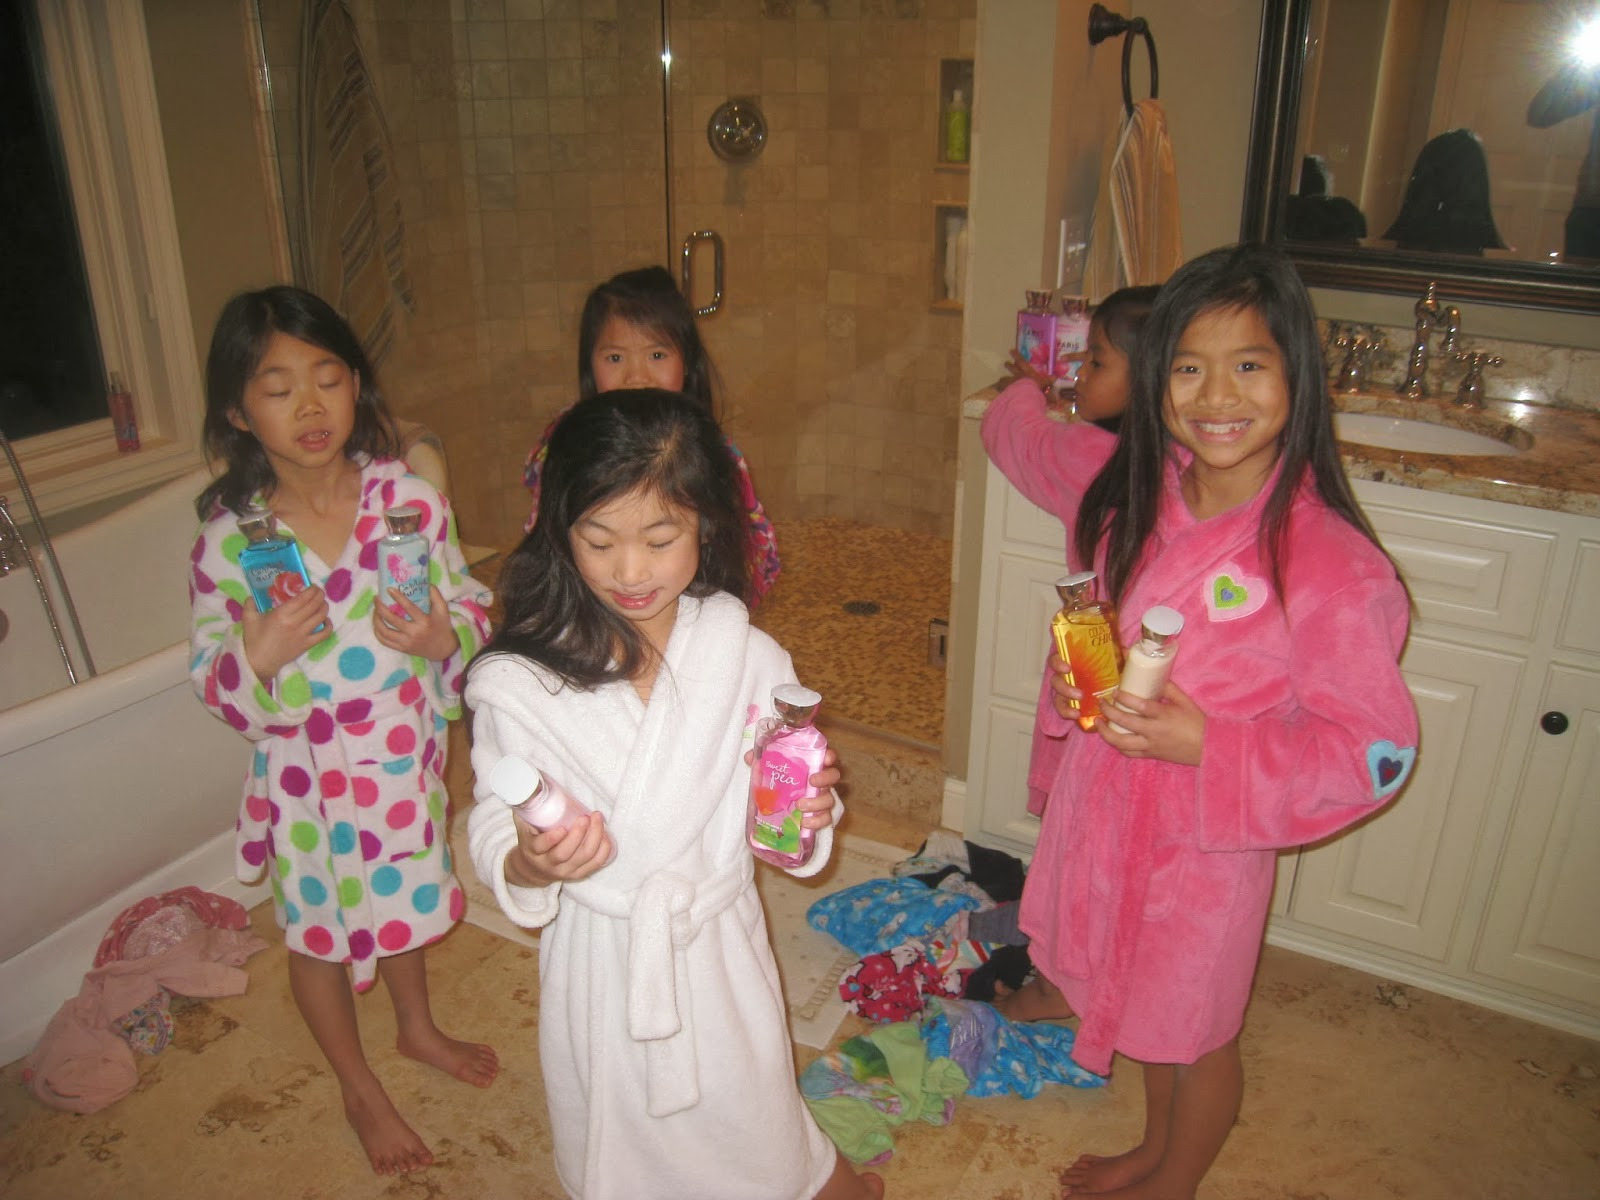 bath single christian girls Download young girl bath stock photos affordable and search from millions of royalty free images, photos and vectors.